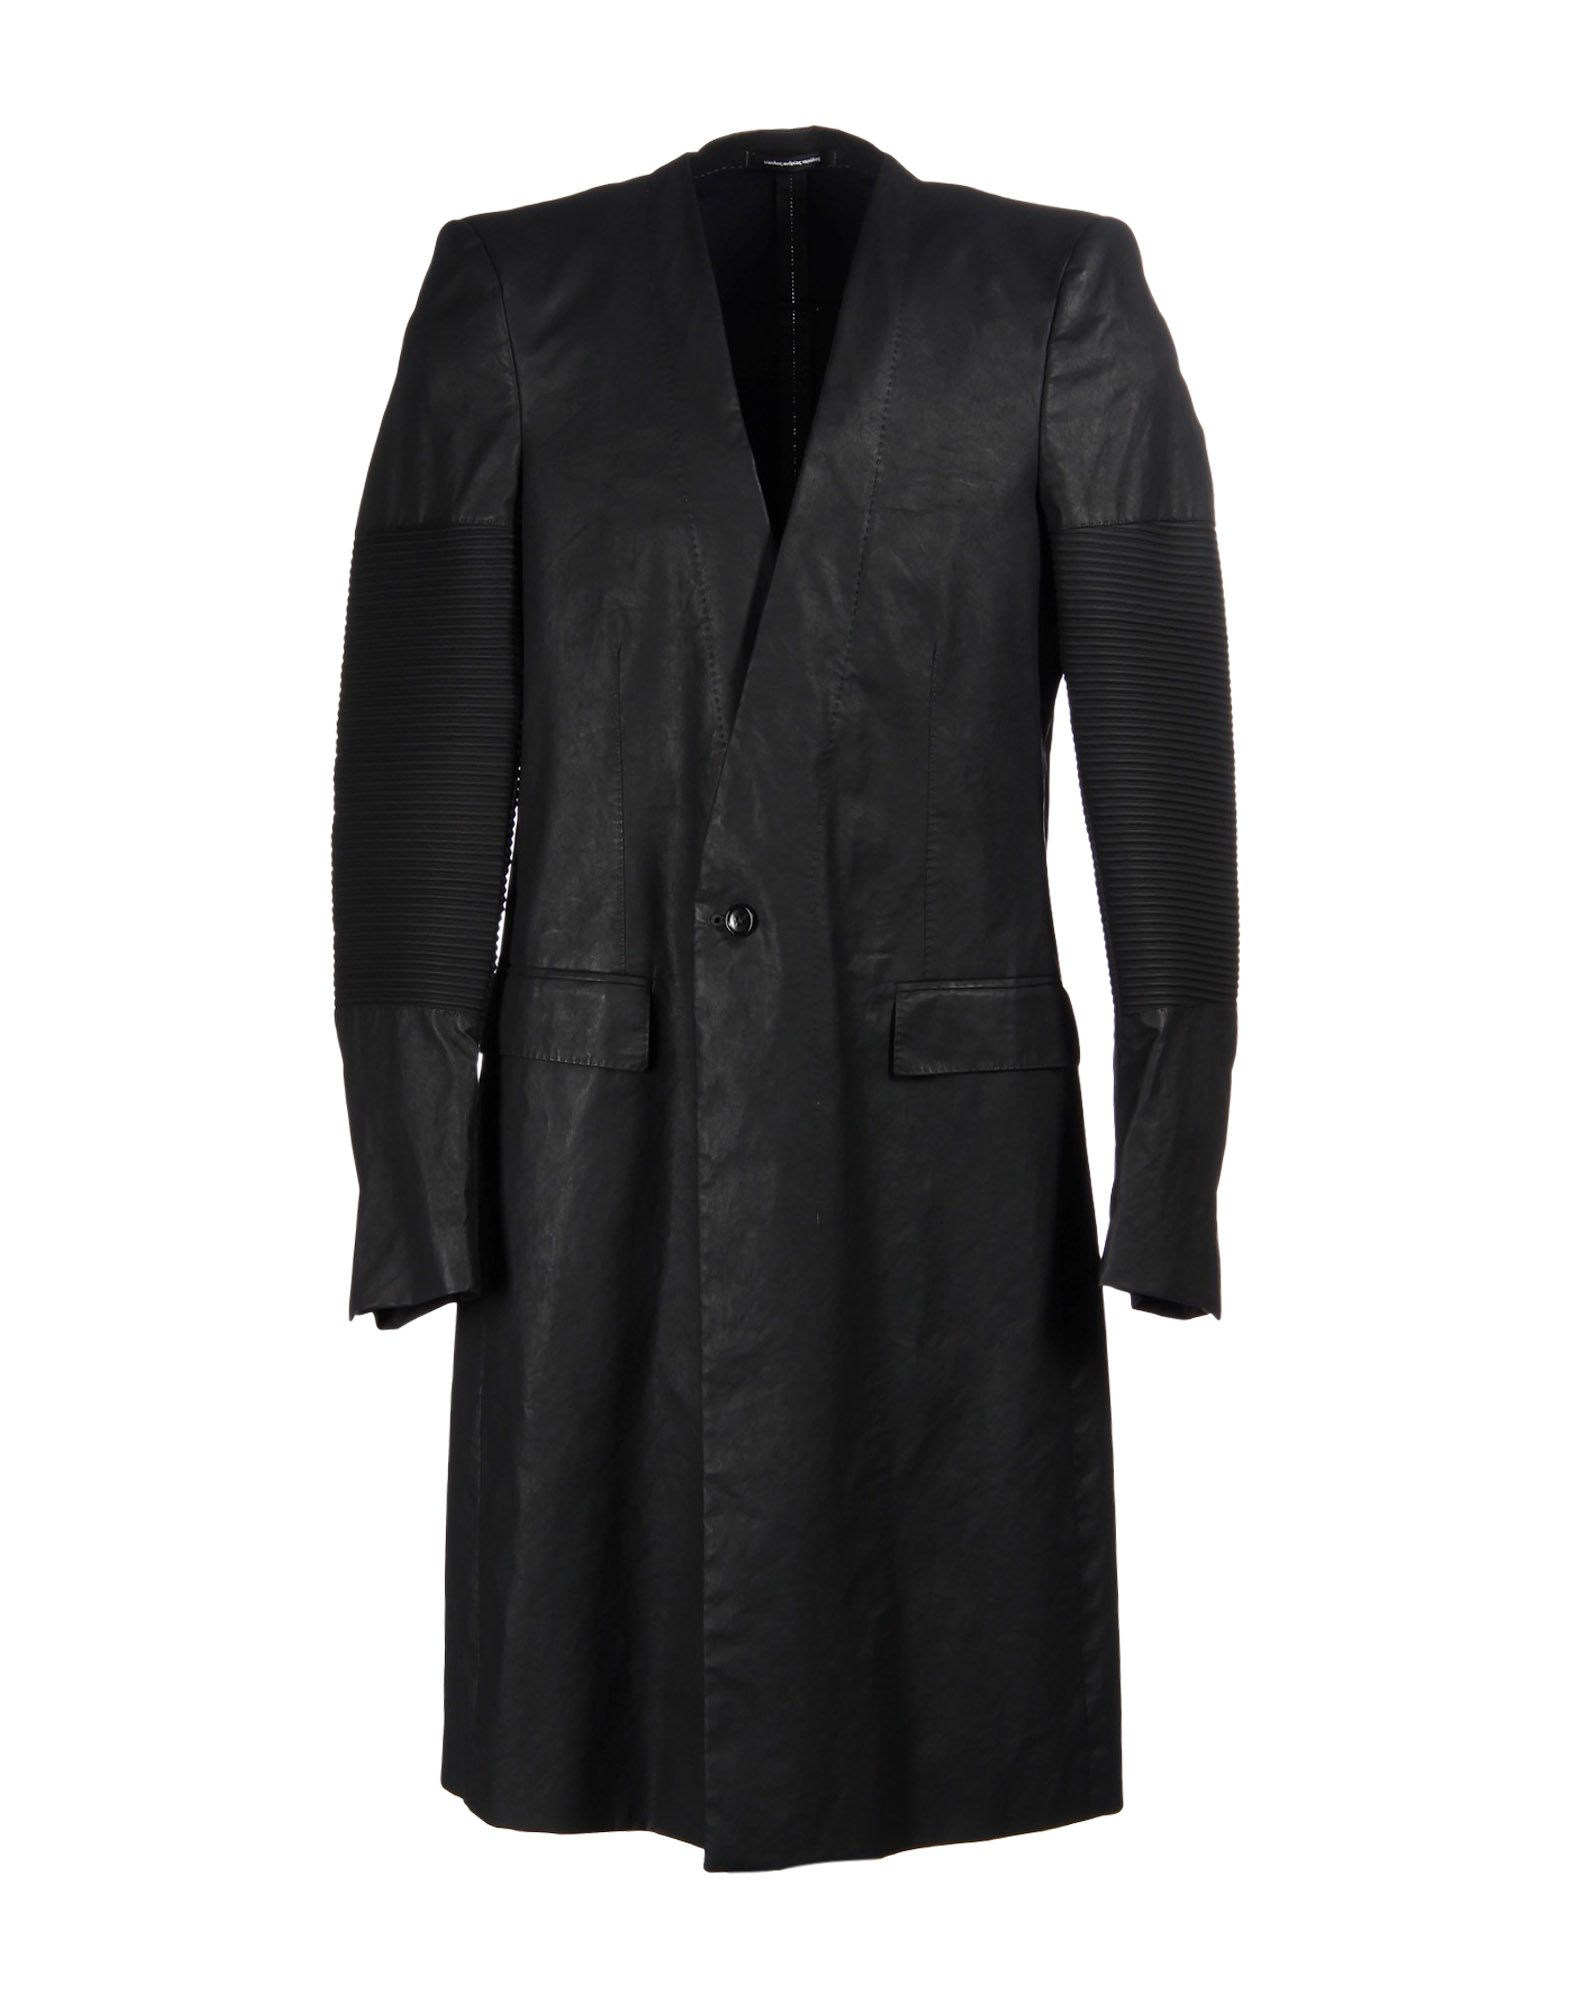 NICOLAS ANDREAS TARALIS Full-Length Jacket in Black